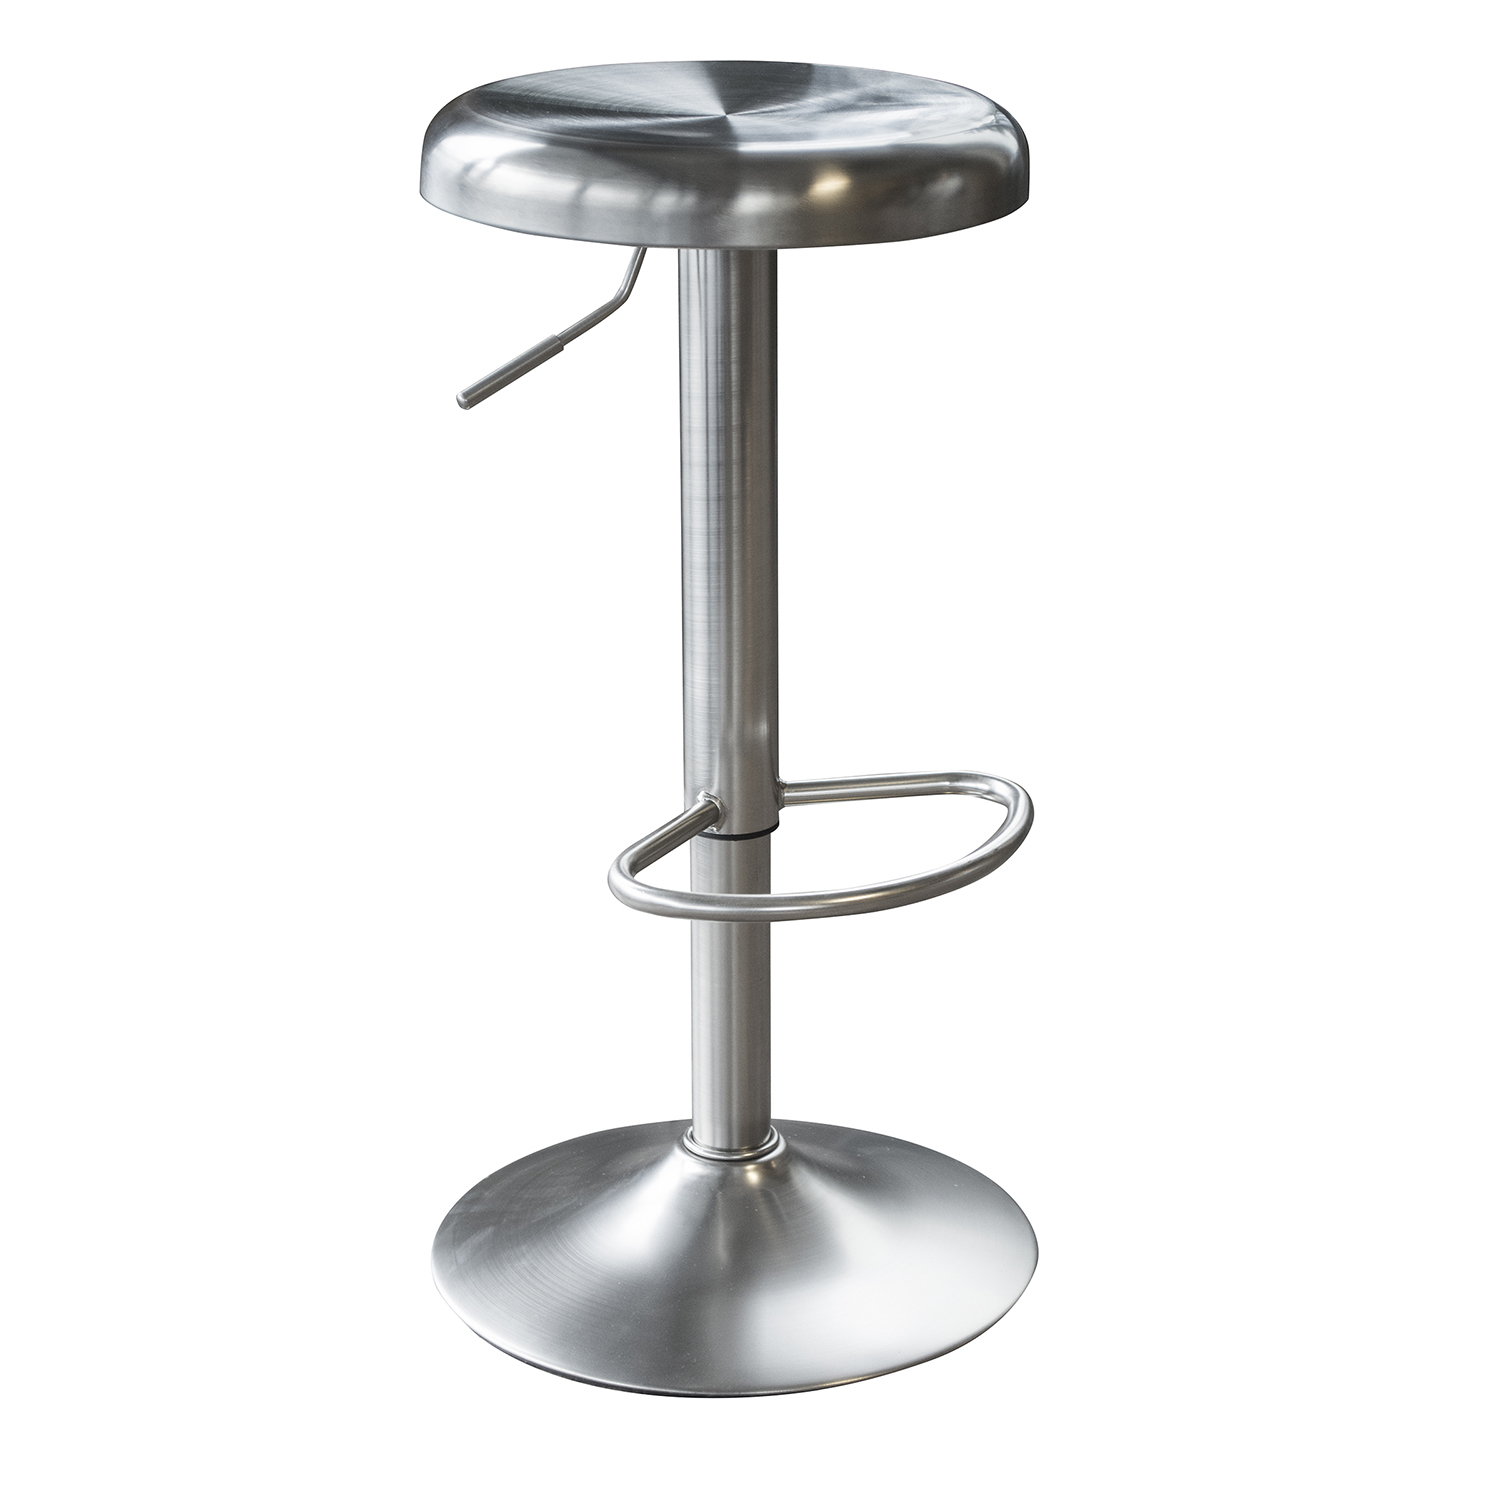 Stainless Bar Stools Amerihome Ssbst Stainless Steel Bar Stool